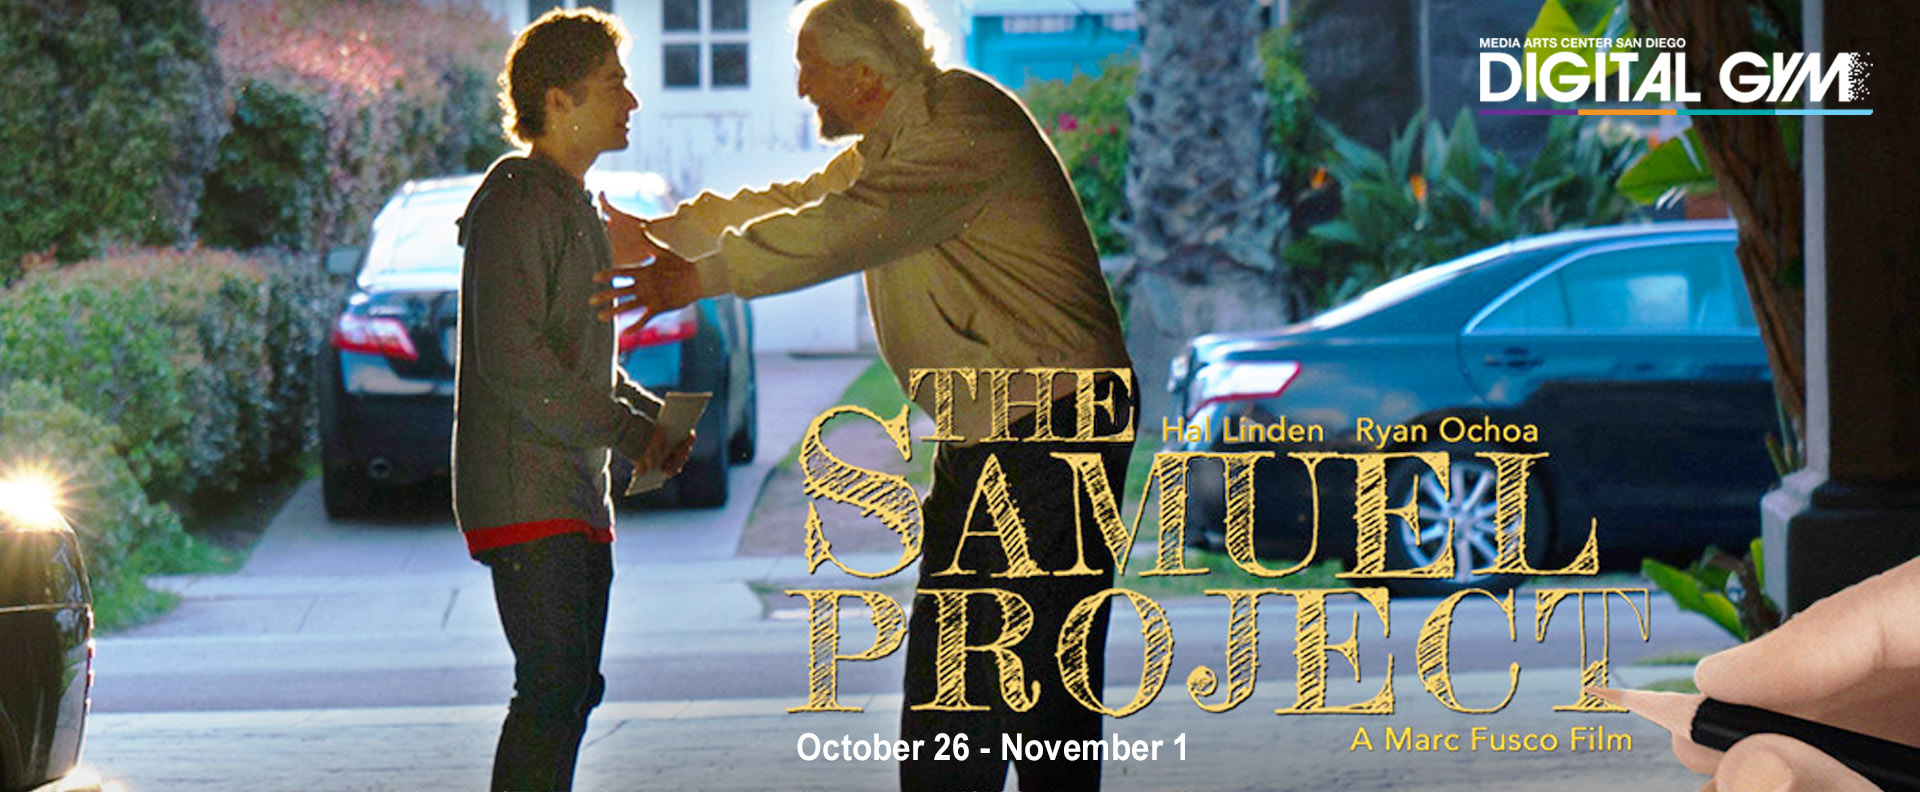 THE LOCALS: The Samuel Project (October 26 – November 1)